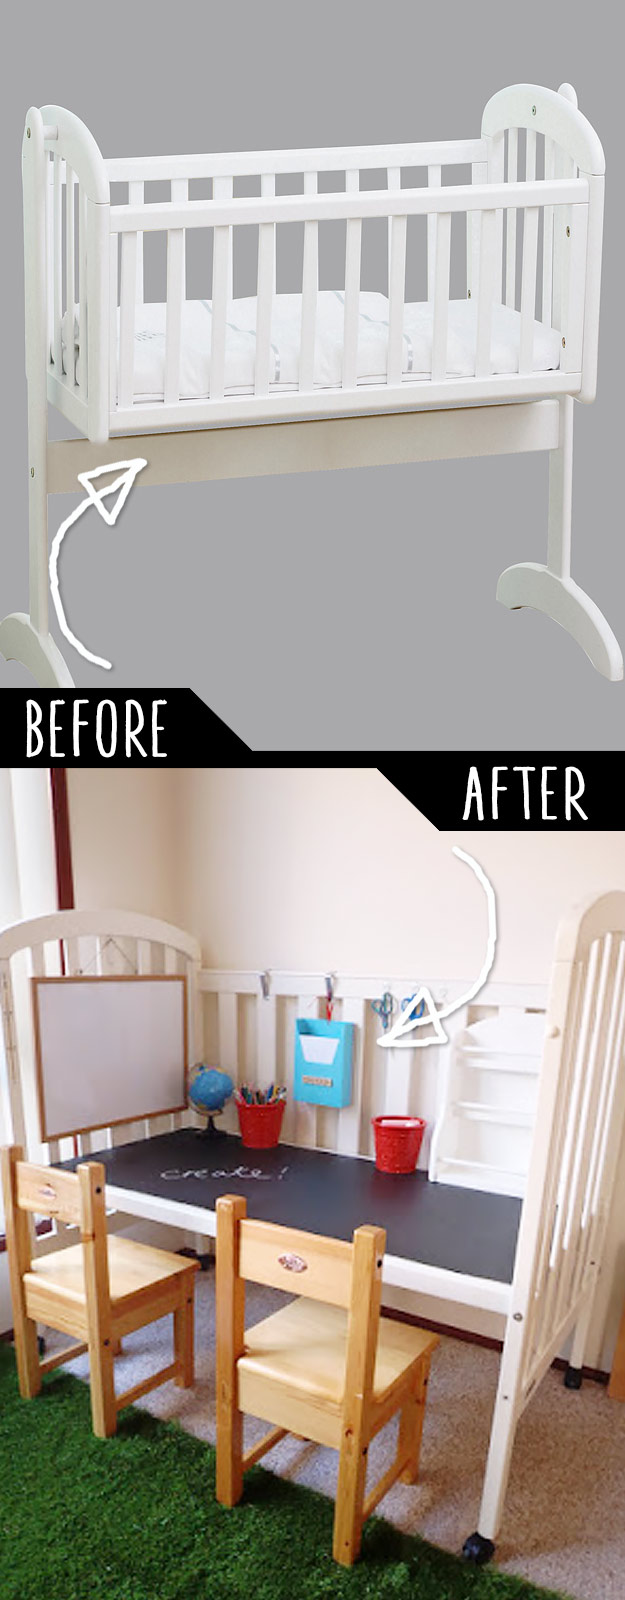 39 clever diy furniture hacks diy furniture hacks repurposed cot cool ideas for creative do it yourself furniture made solutioingenieria Images